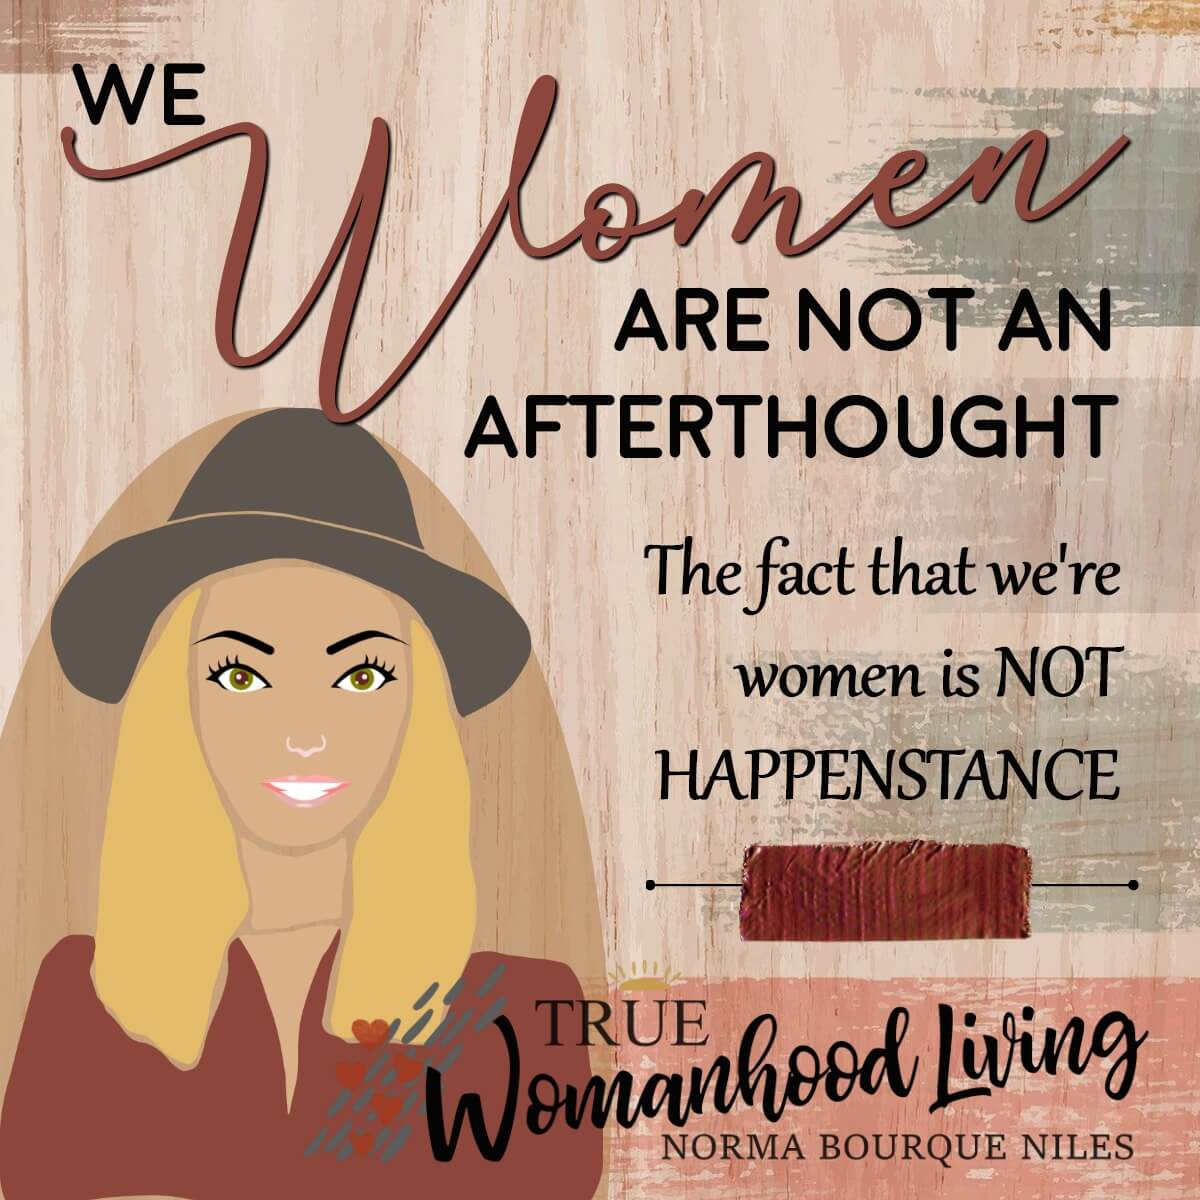 We Women Are Not An Afterthought